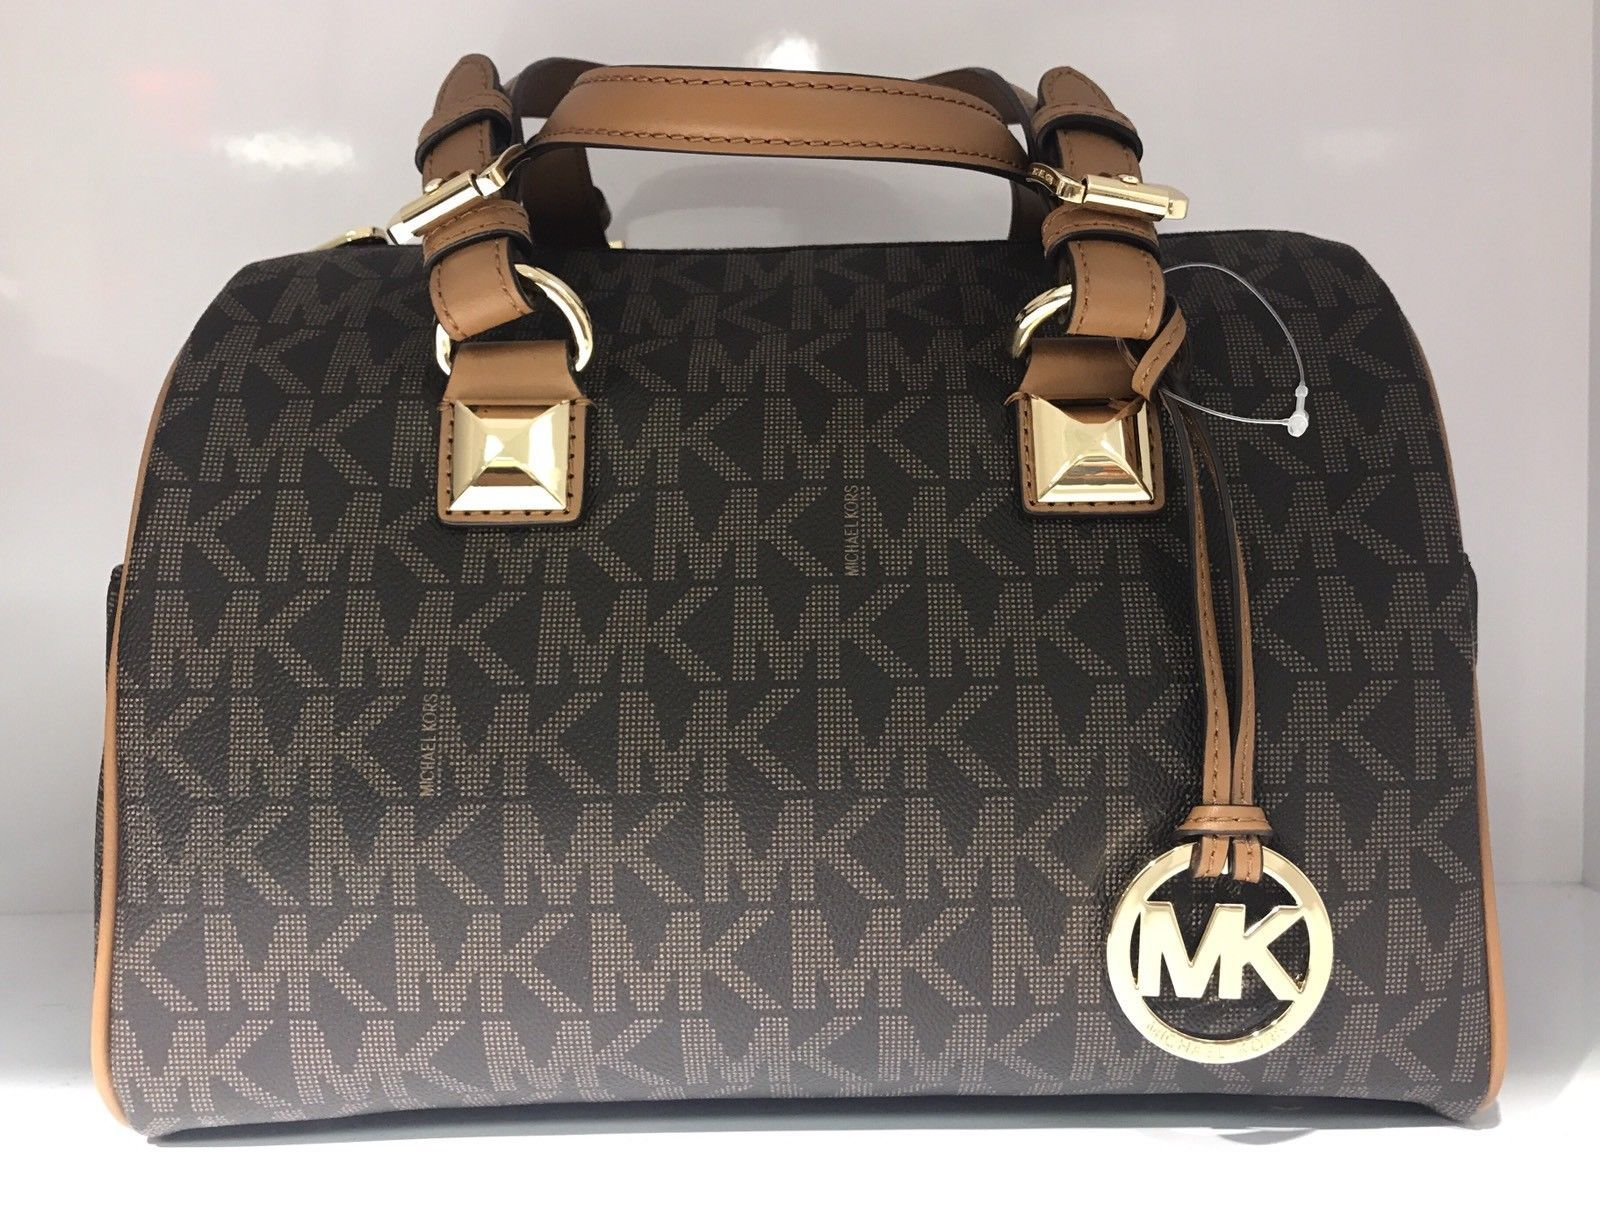 0f814a9365e3 MICHAEL Michael Kors Medium Grayson Brown MK LOGO Satchel Bag  179.98